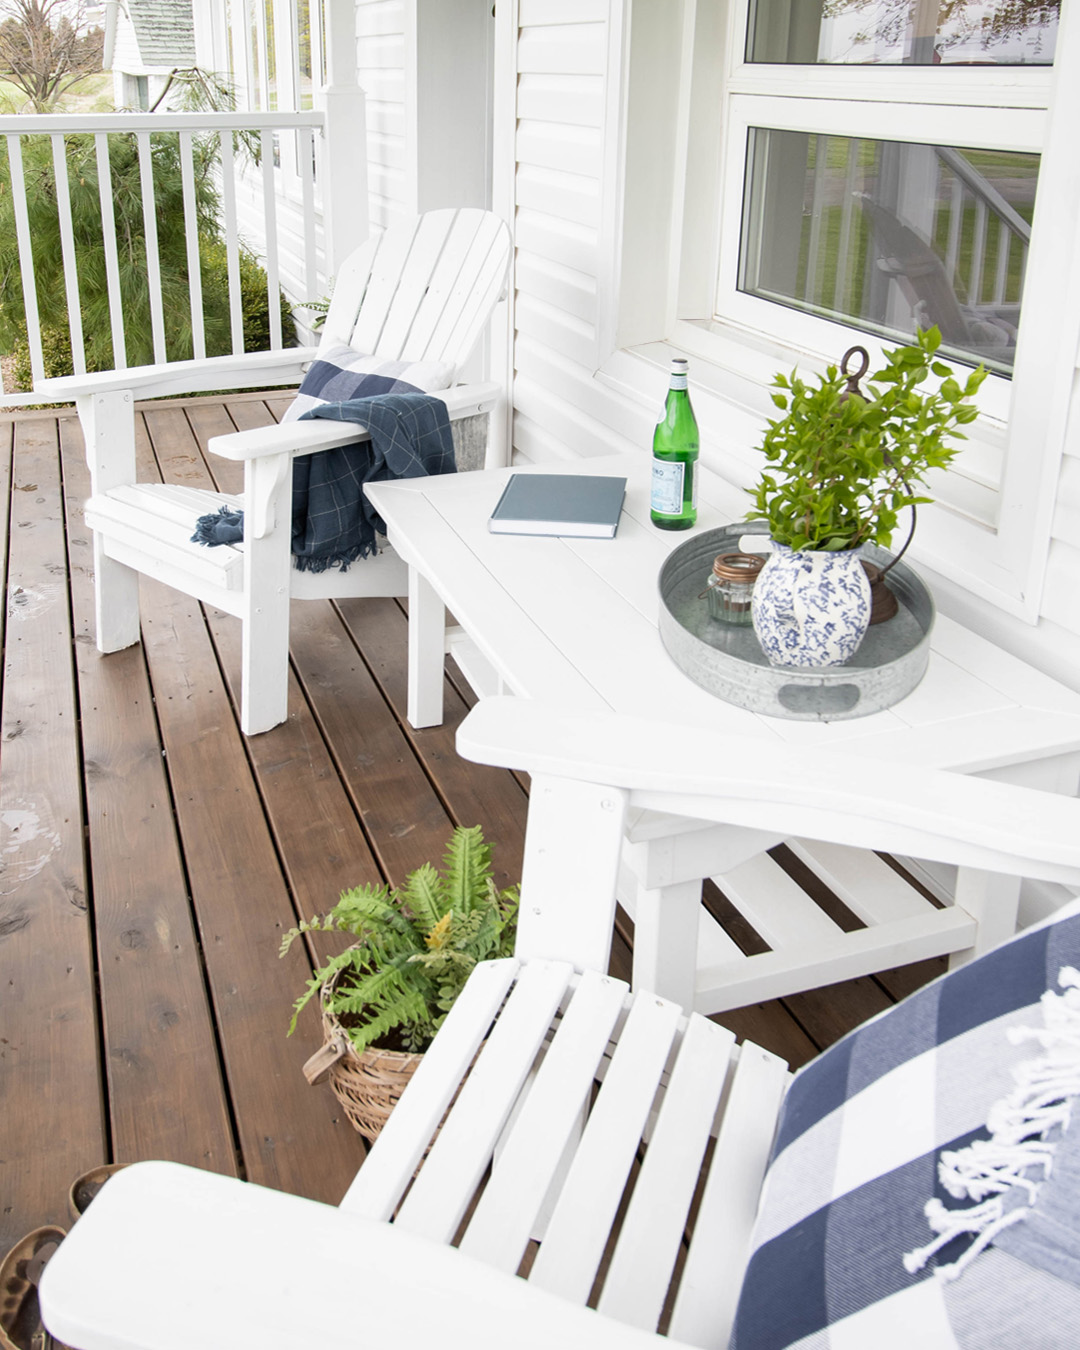 Just some thoughts on setting up an outdoor coffee table that's both pretty to look at and functional! These ideas should keep you from having to run out to your porch to bring everything in every single time it rains this summer!